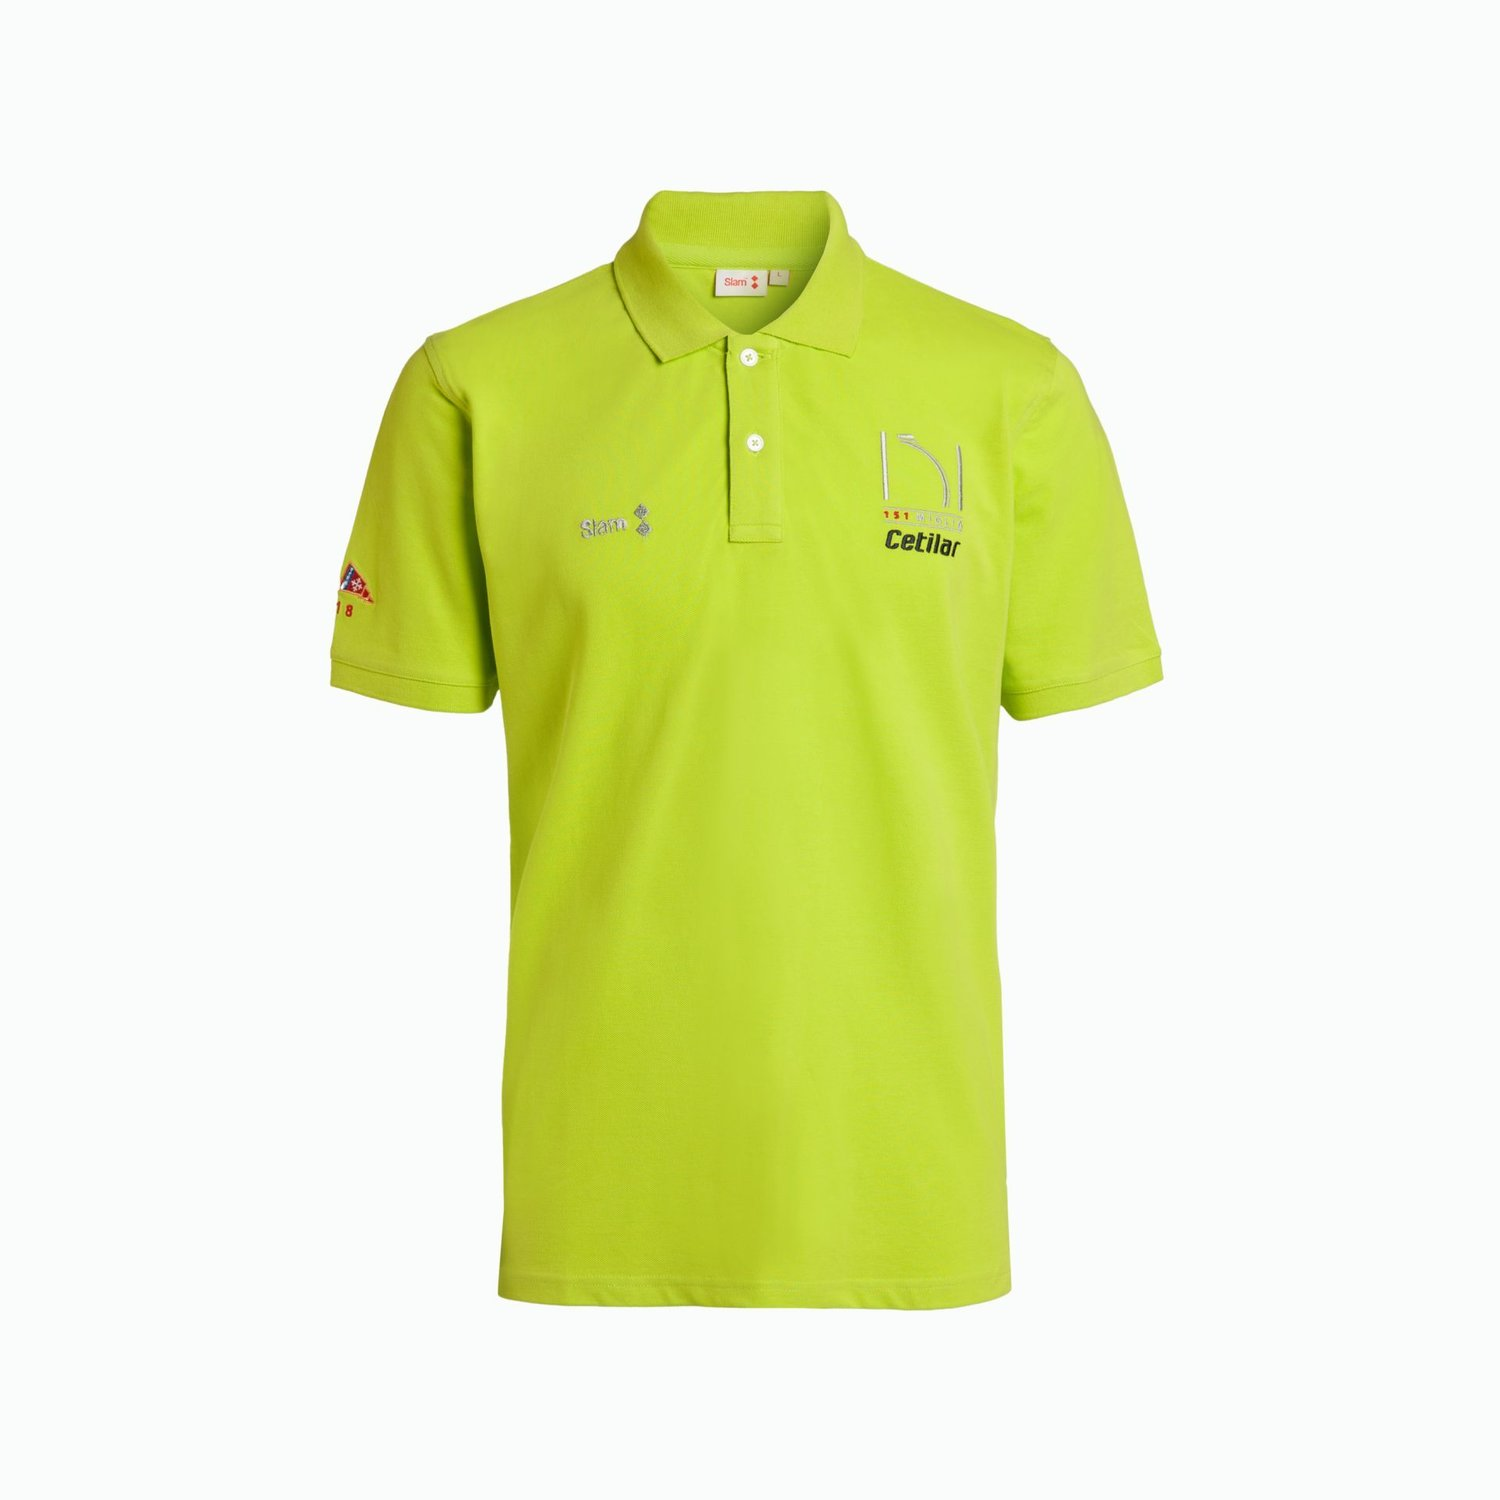 Men's Polo 151 Miglia 2018 - Yellow Neon